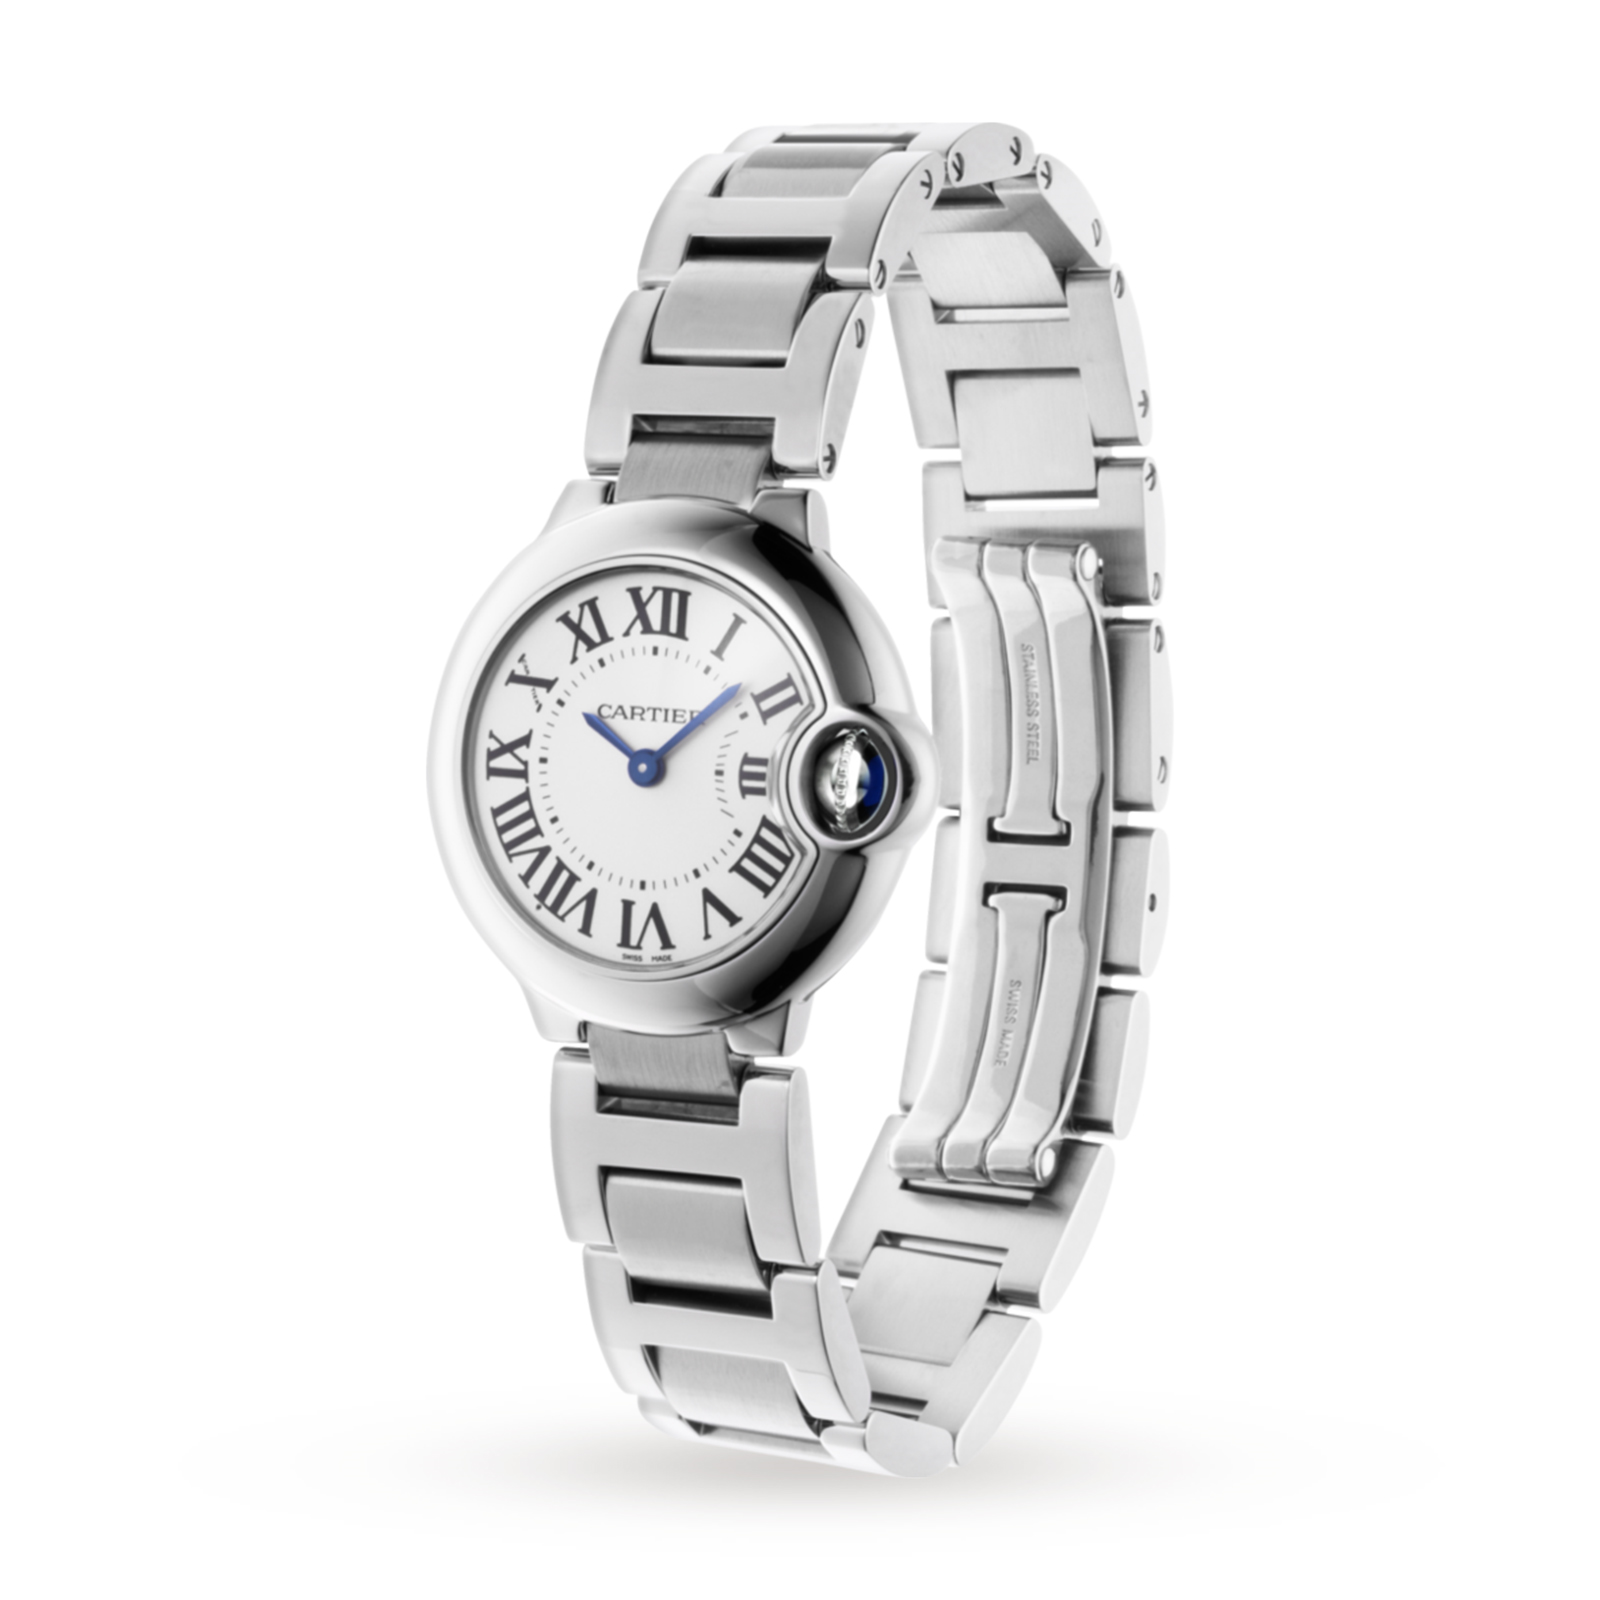 Cartier Ballon Bleu de Cartier watch, 28 mm